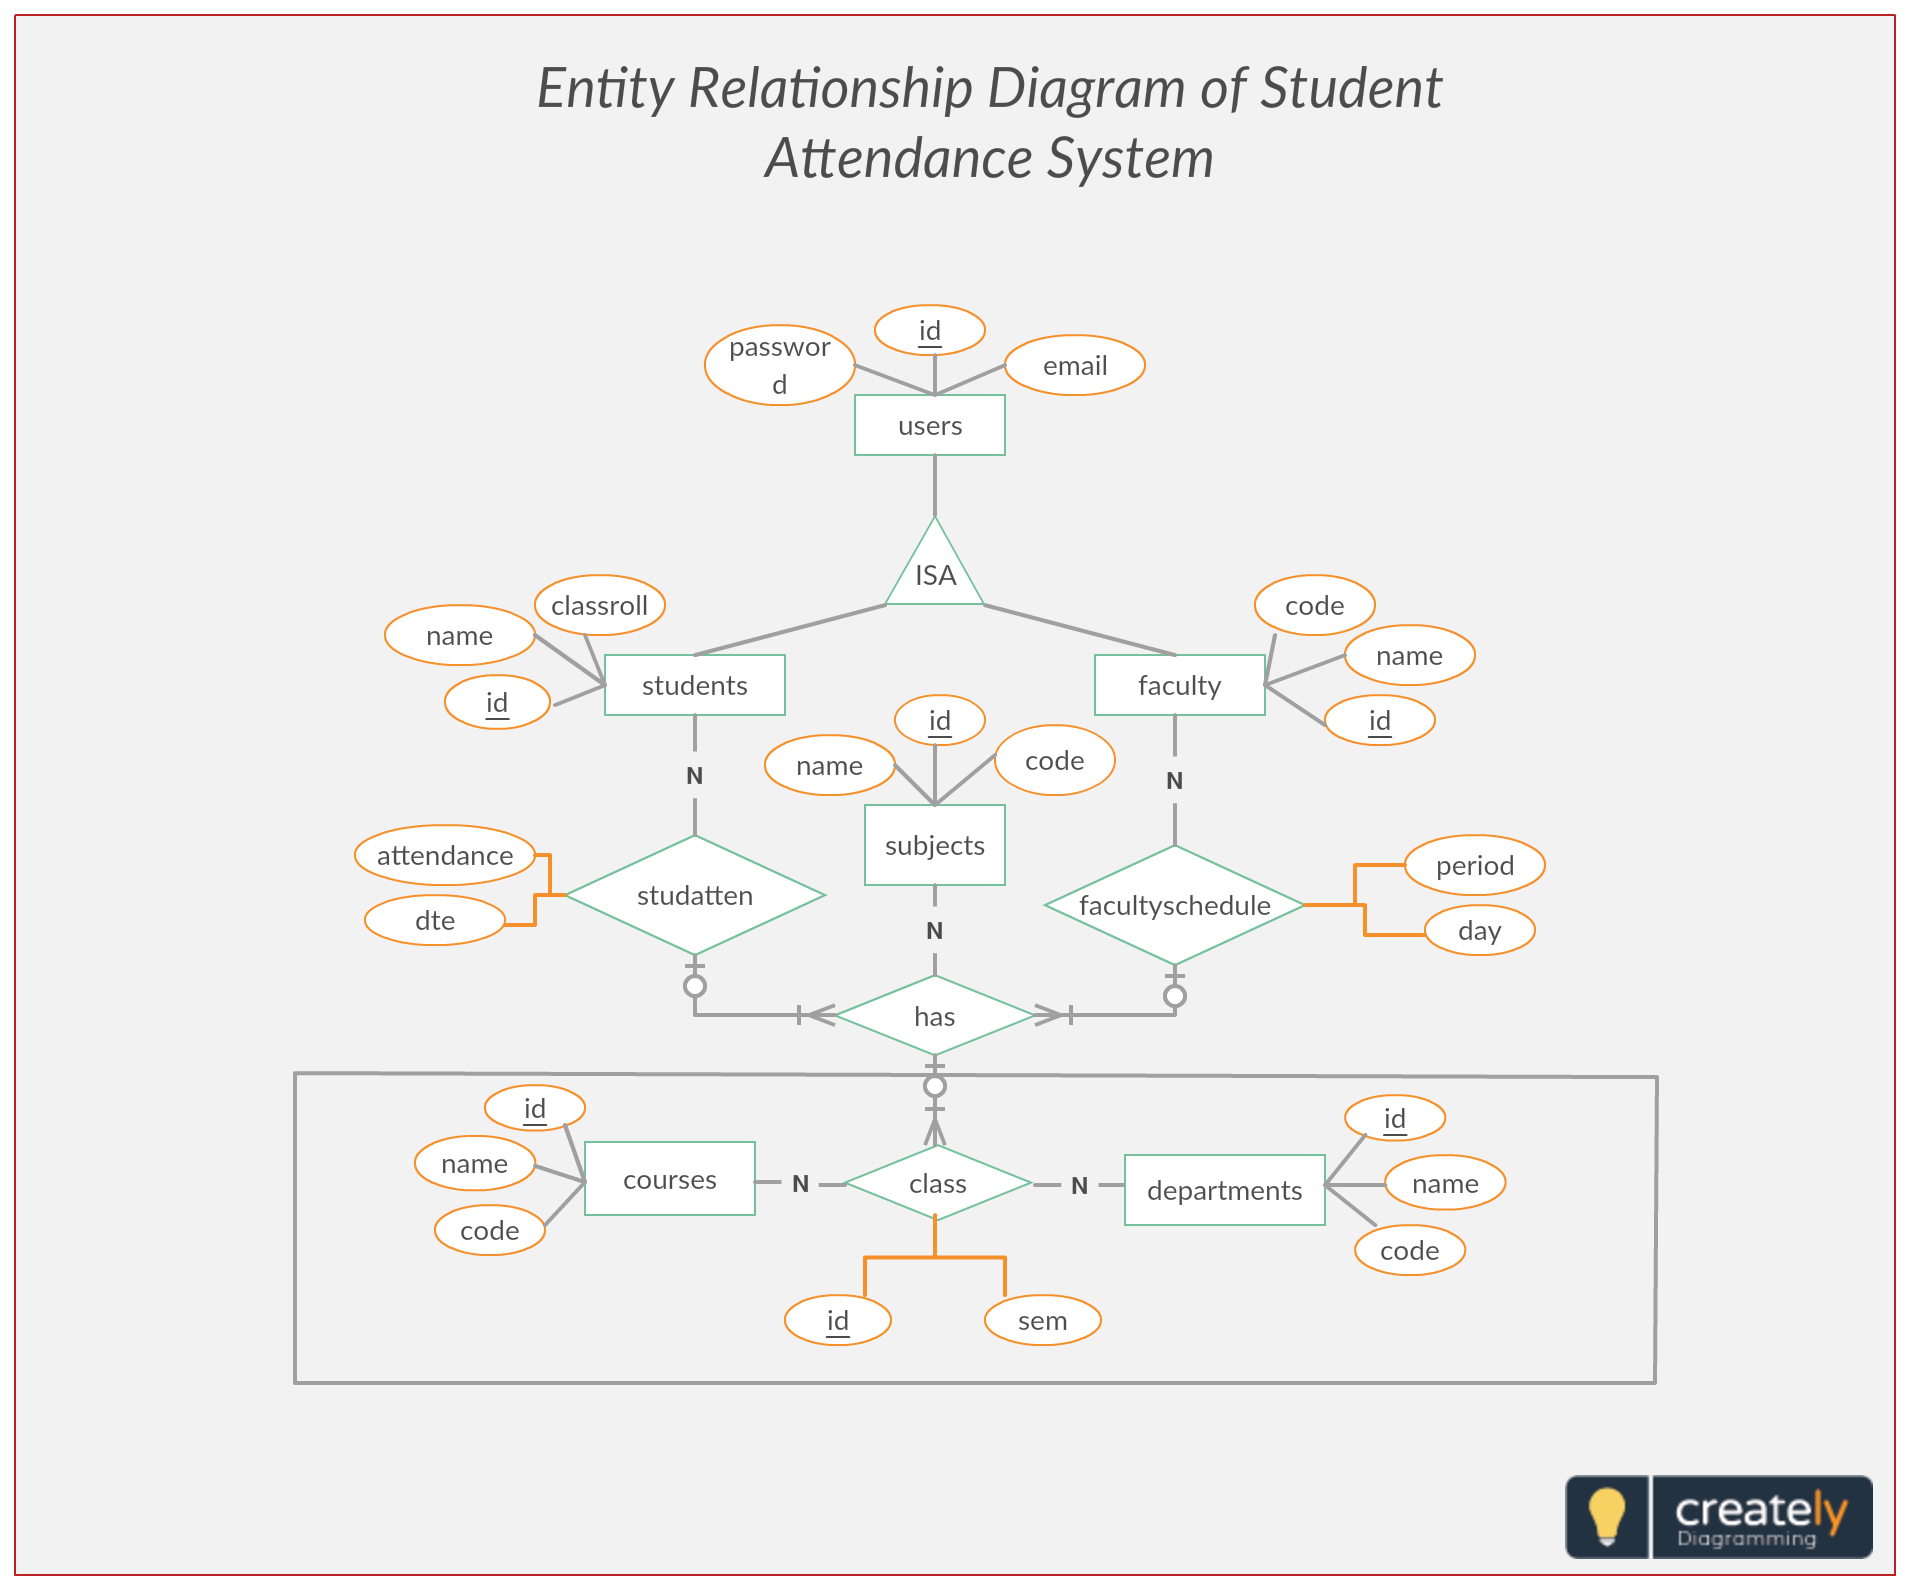 medium resolution of er diagram student attendance management system entity relationship diagram represents the relationship between entities in a table